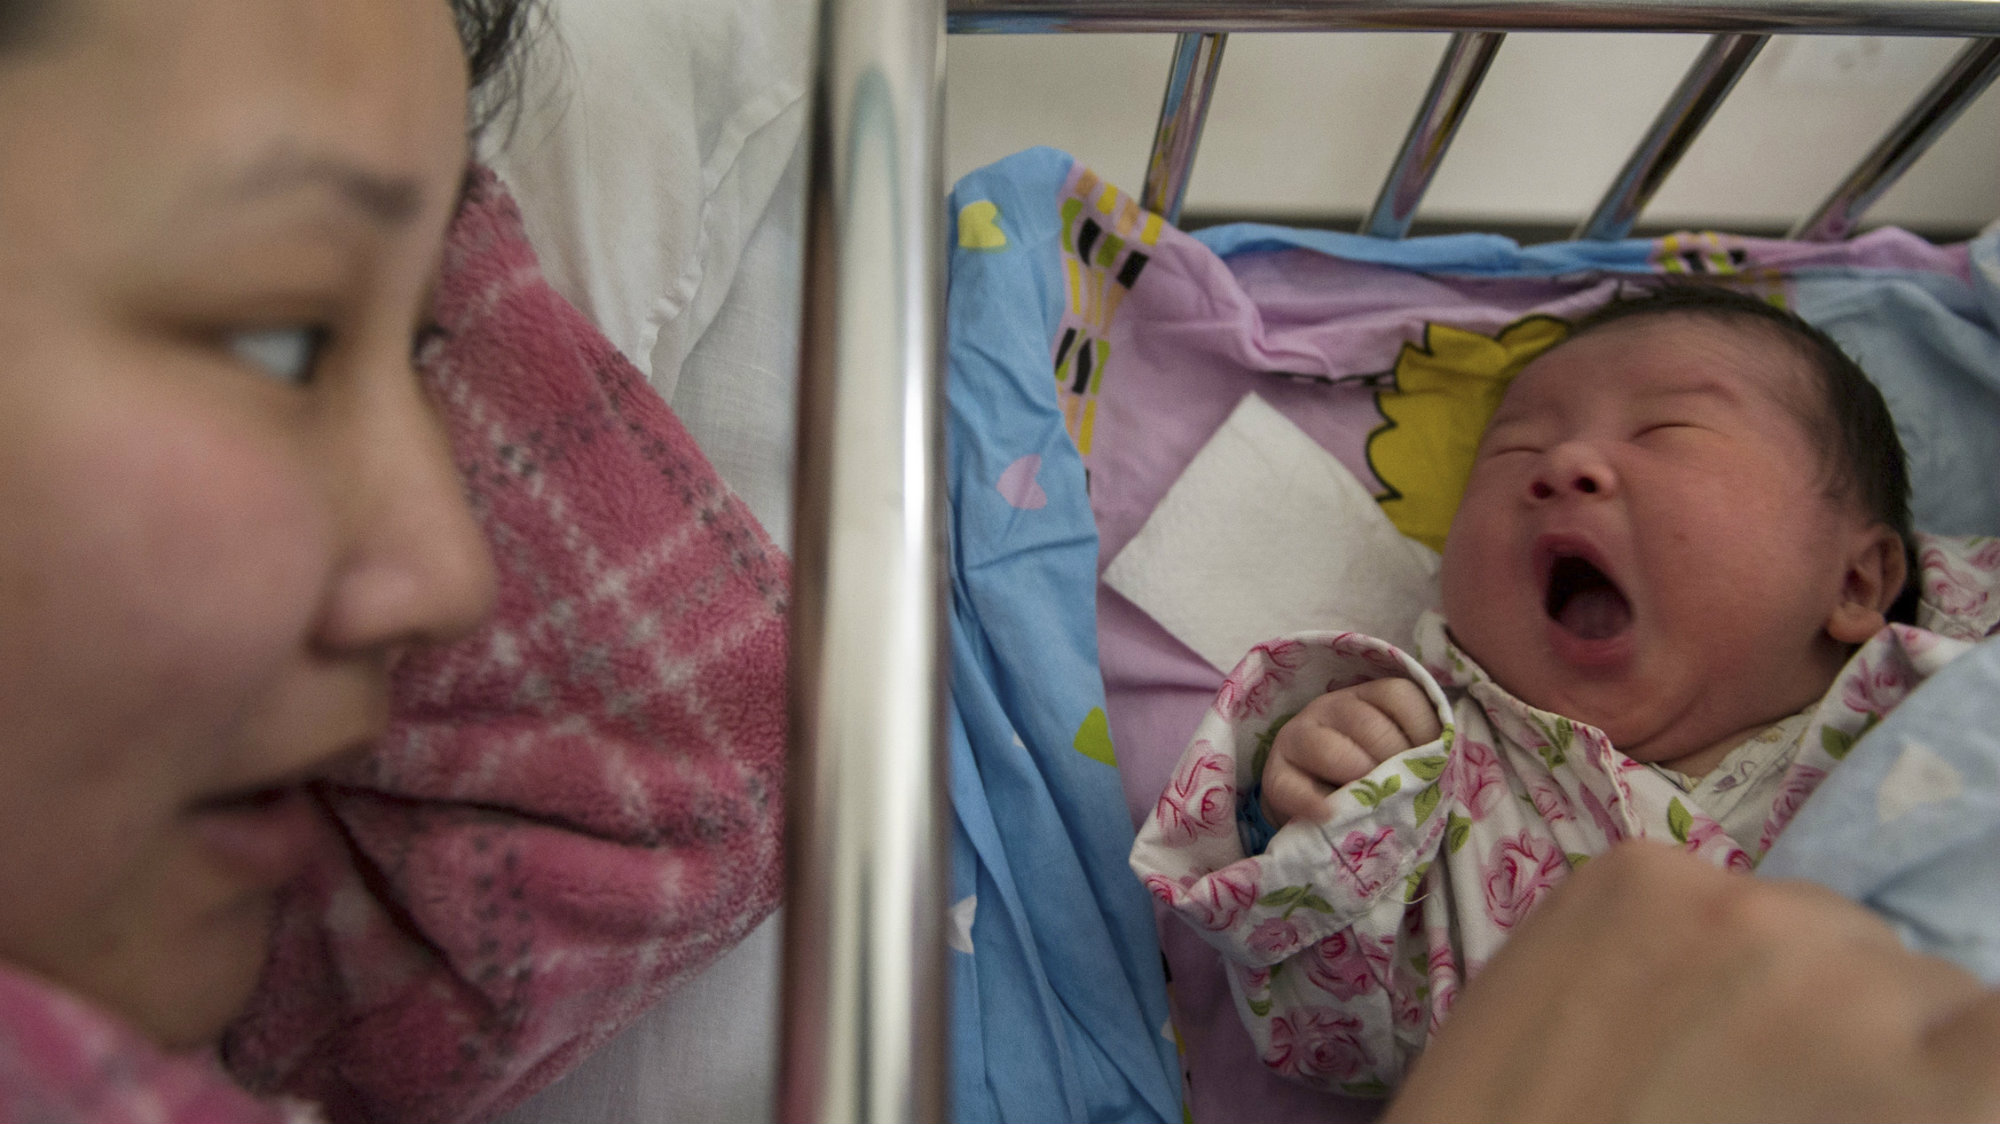 Li Yan (L) looks at her newborn baby at a hospital in Hefei, Anhui province February 23, 2014.